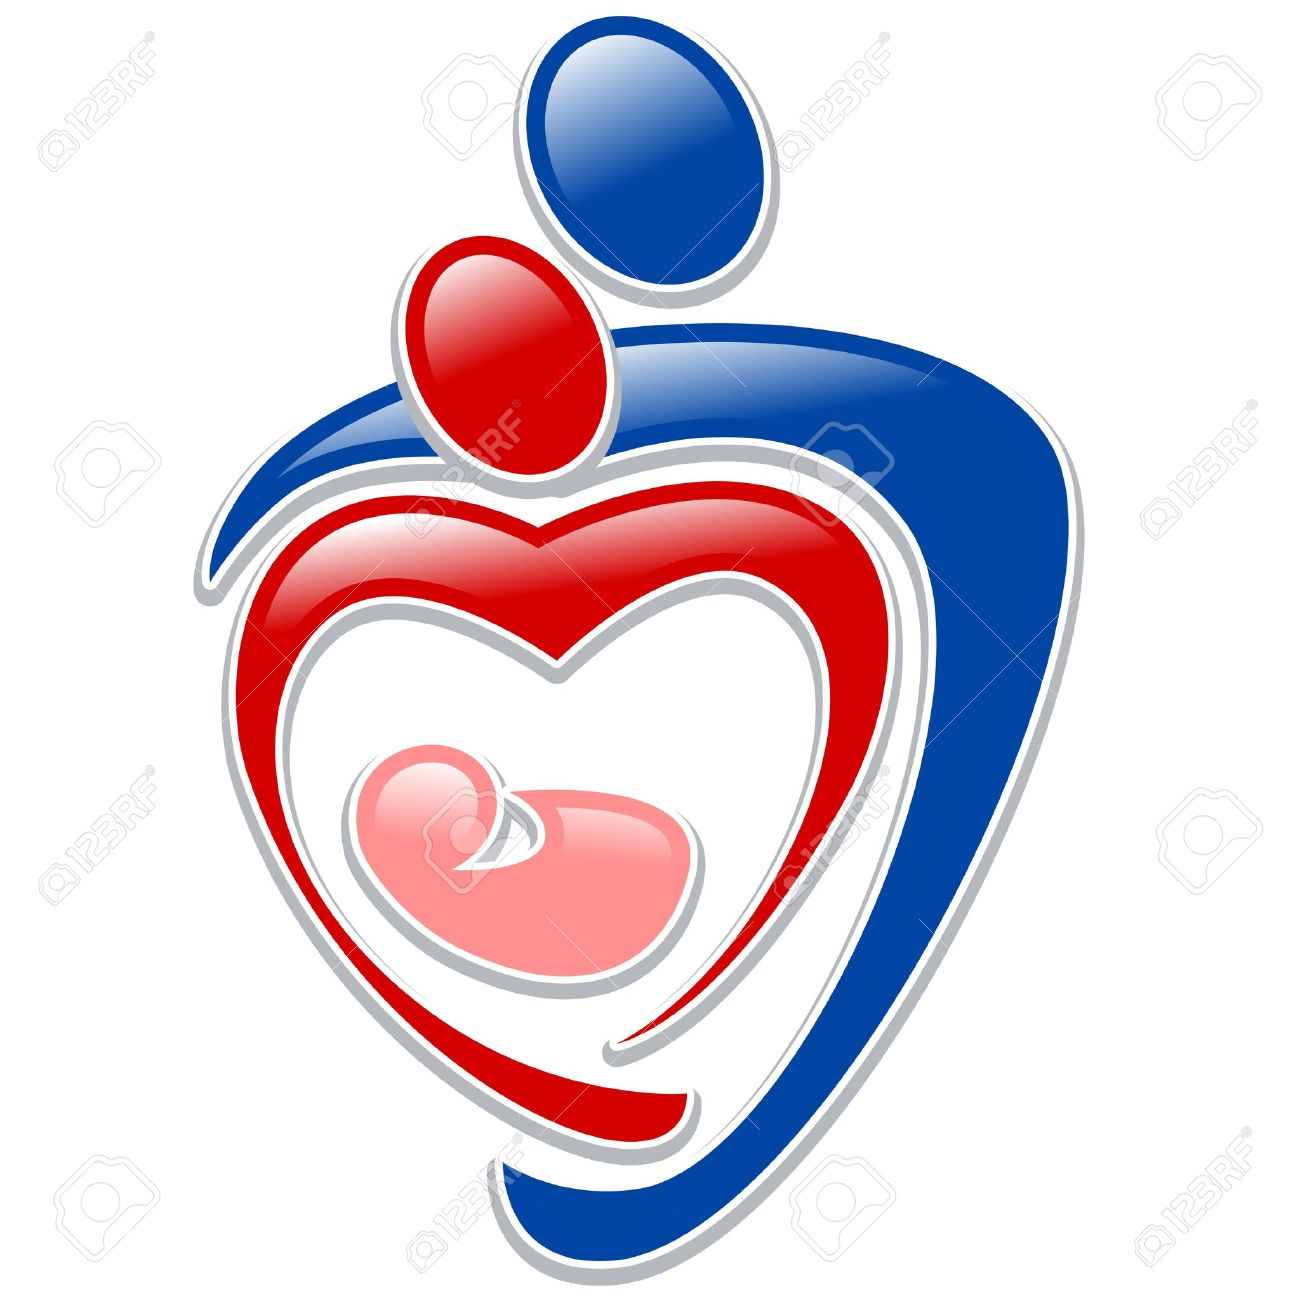 icon person - symbol family holding hands in the shape of a heart - 11988451